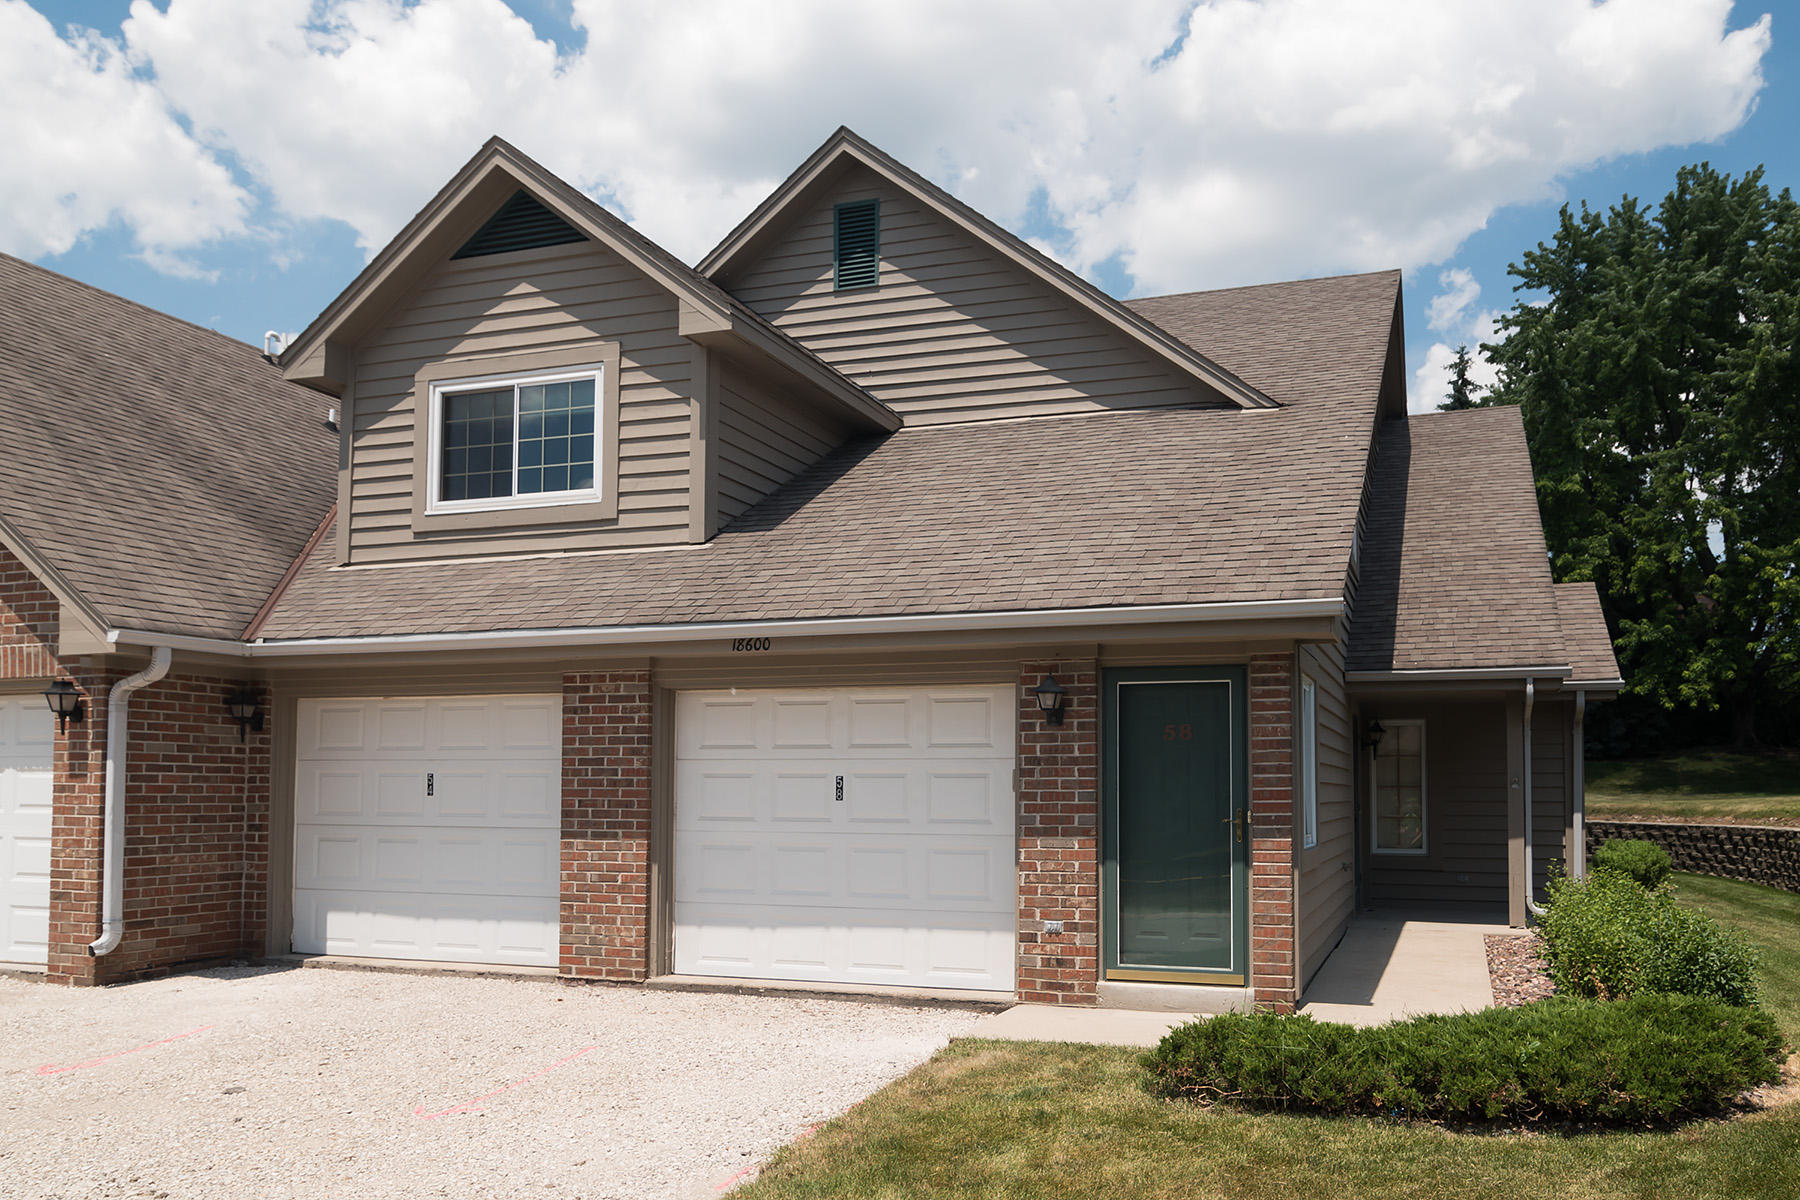 18600 Brookfield Lake Dr, Brookfield, Wisconsin 53045, 2 Bedrooms Bedrooms, 5 Rooms Rooms,2 BathroomsBathrooms,Condominiums,For Sale,Brookfield Lake Dr,2,1694899